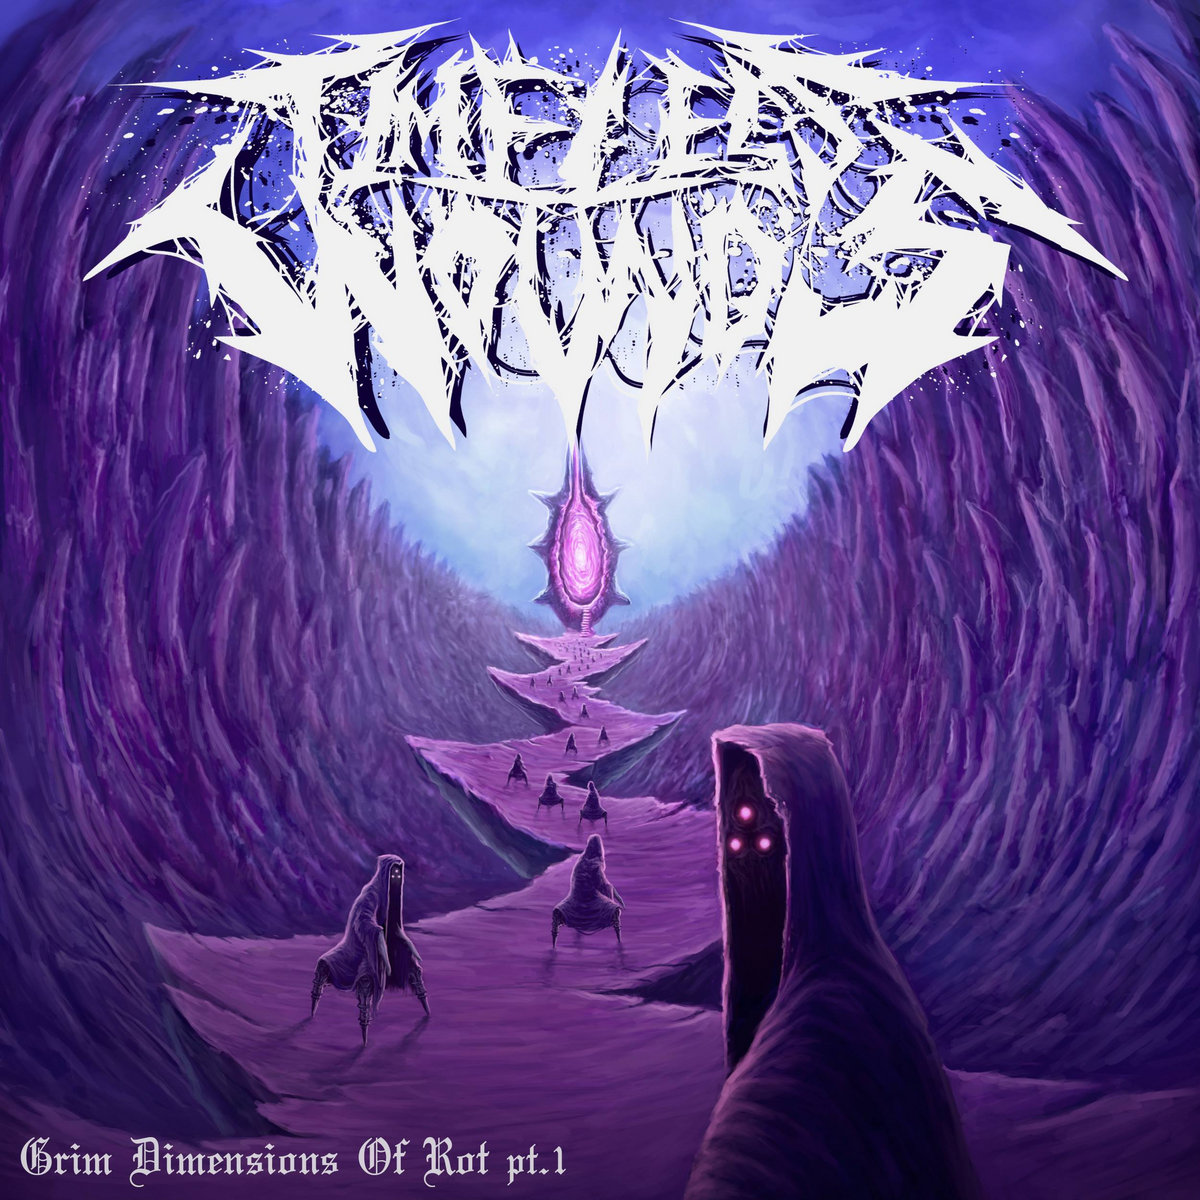 Timeless Wounds - Subjugated Through Bludgeoning [Single] (2018)